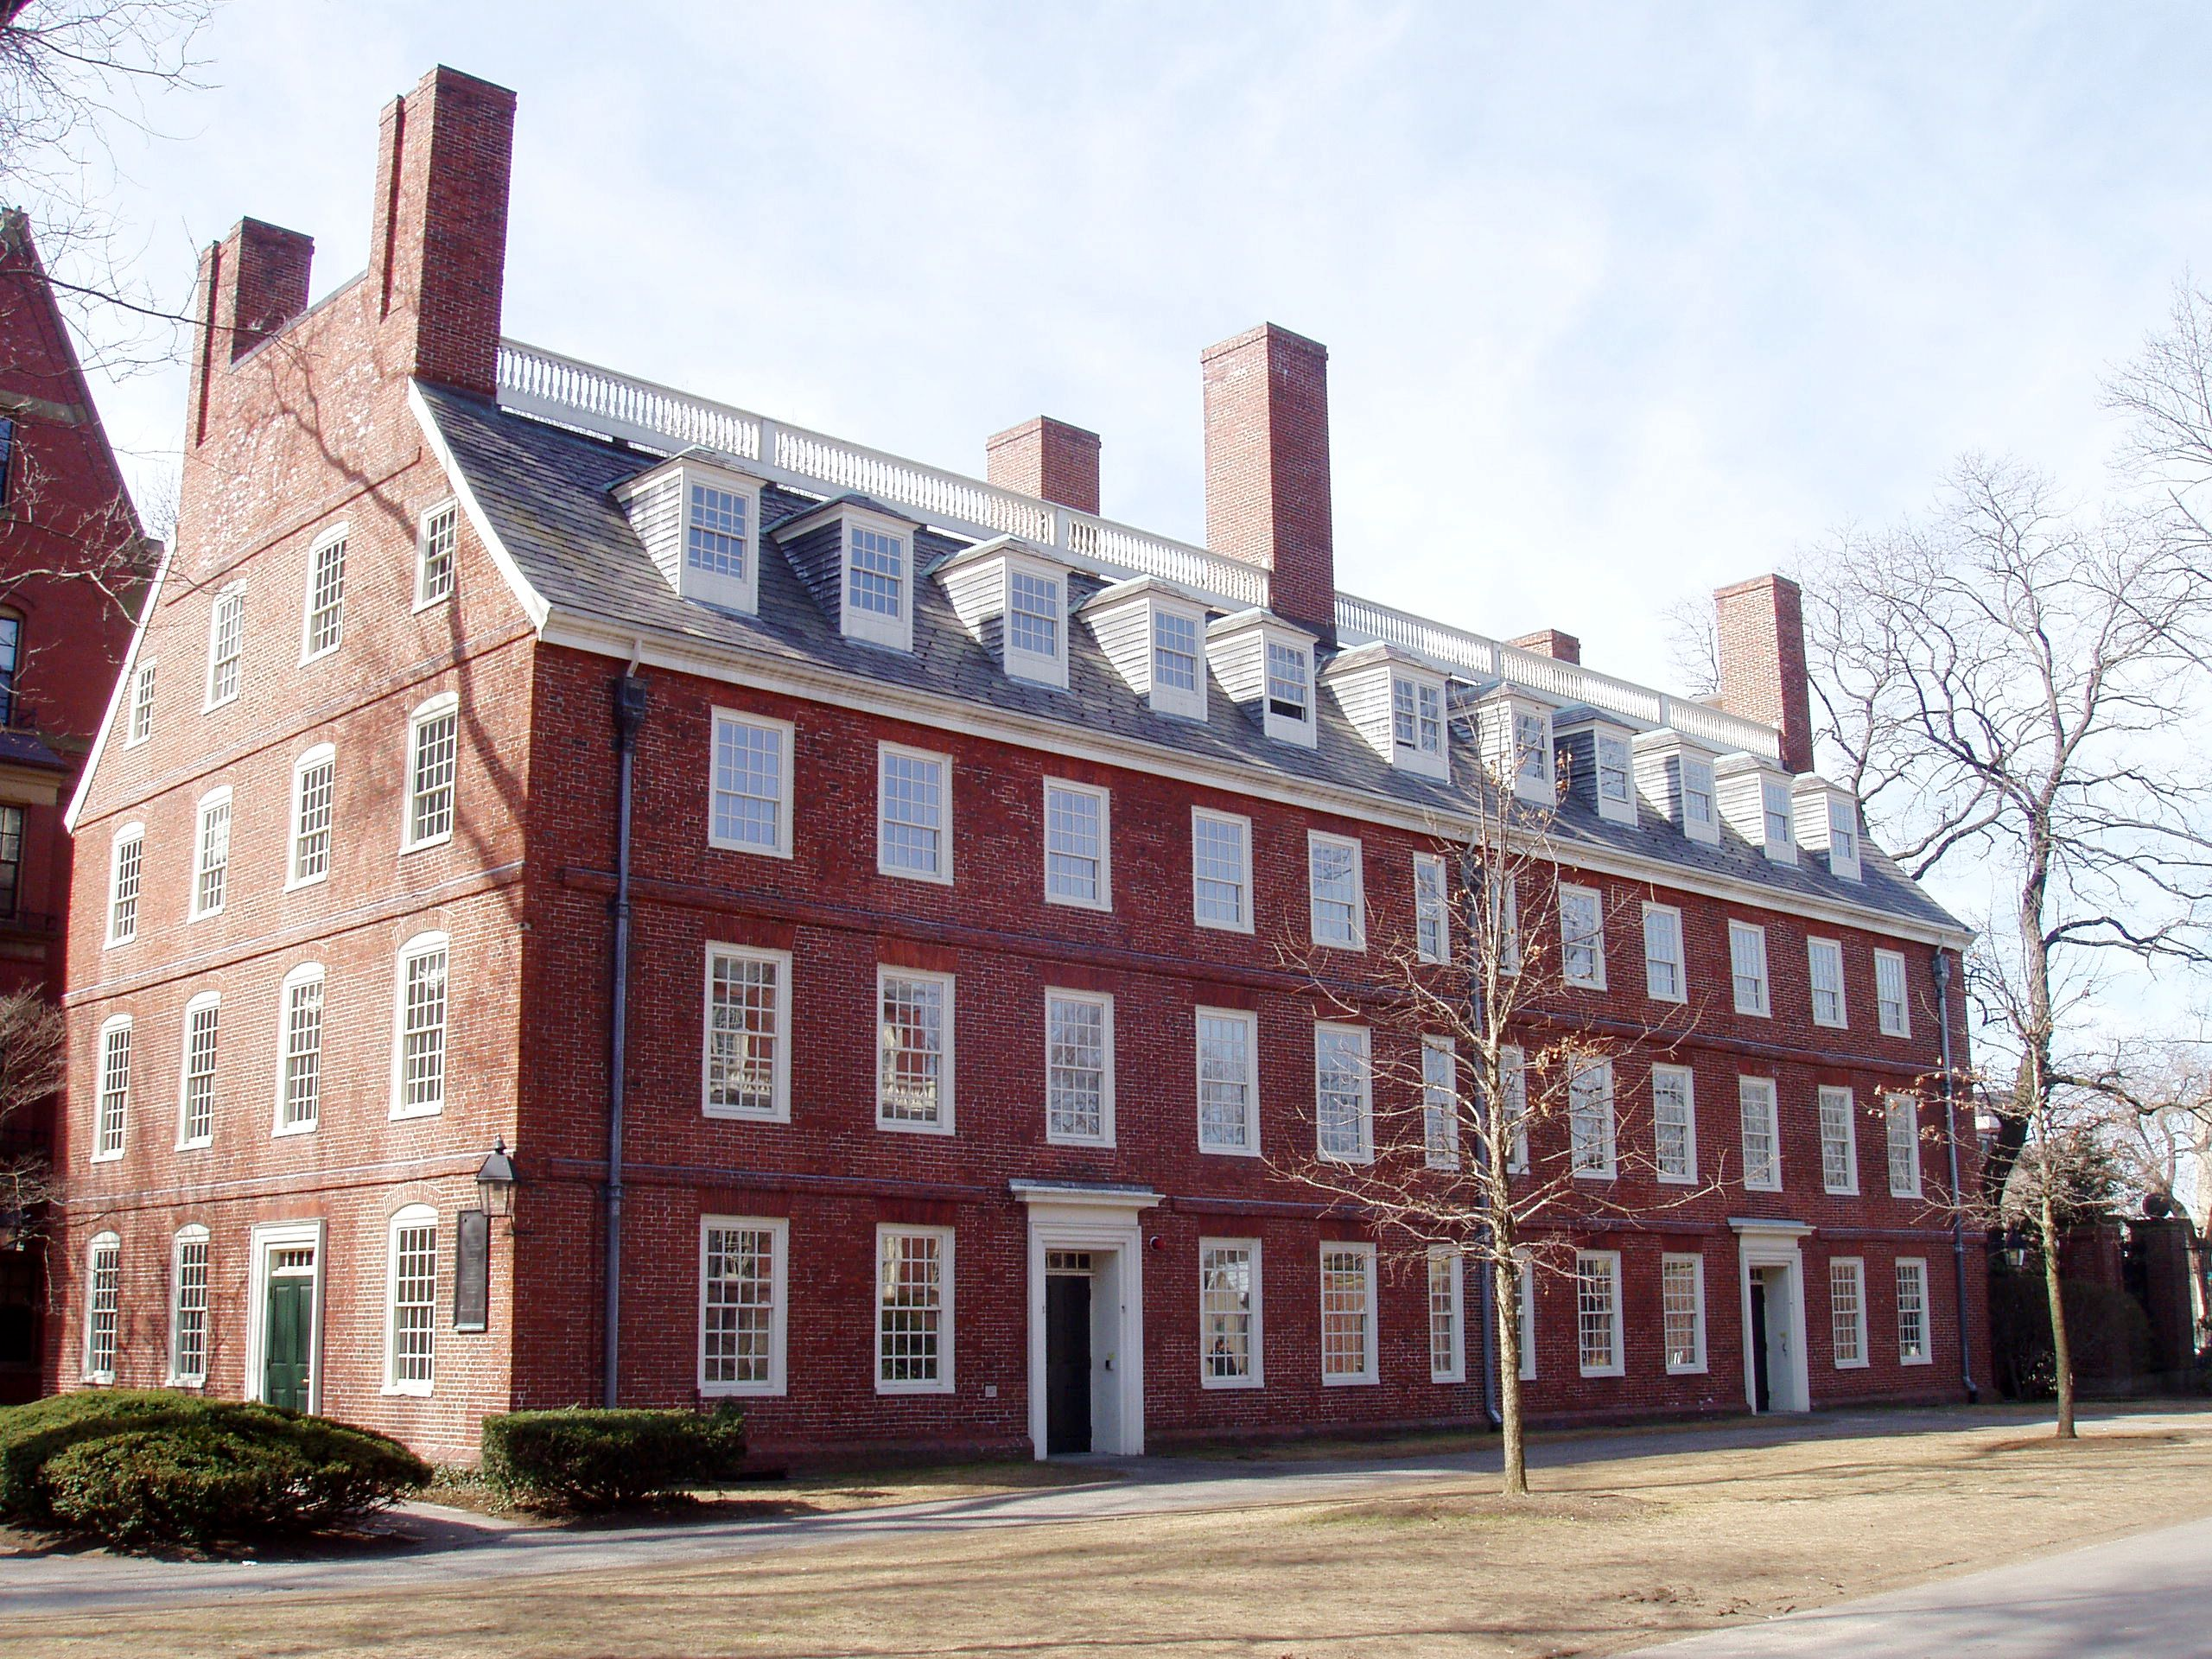 File:Massachusetts Hall, Harvard University.JPG ...